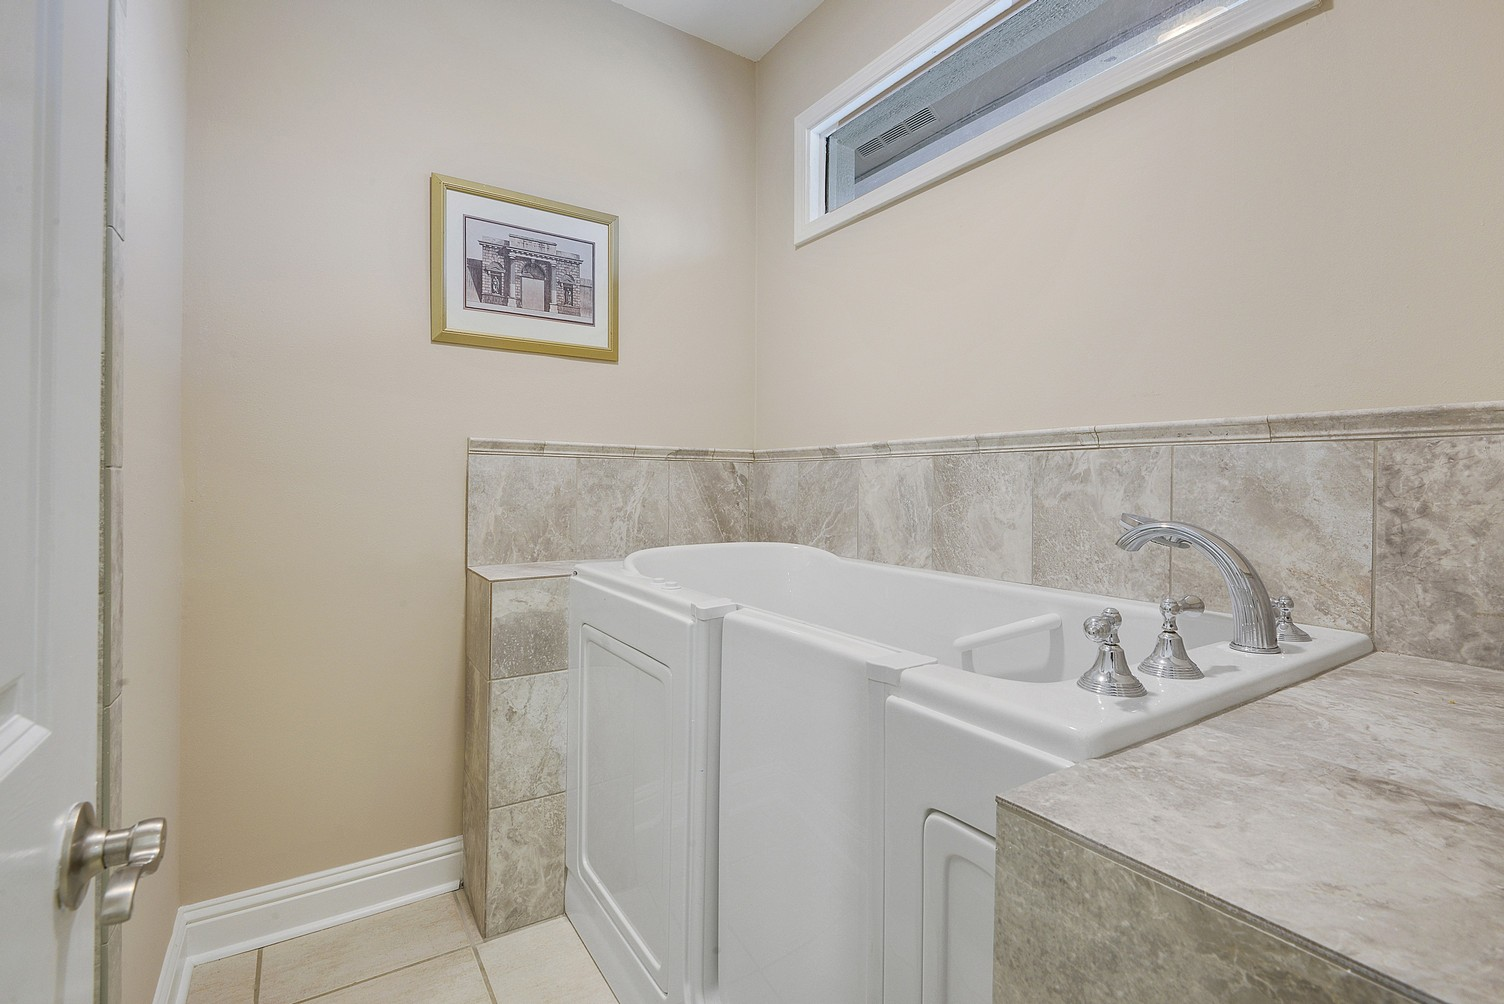 Handicap Bathroom Remodel Aging In Place Remodeling Contractor Baton Rouge La